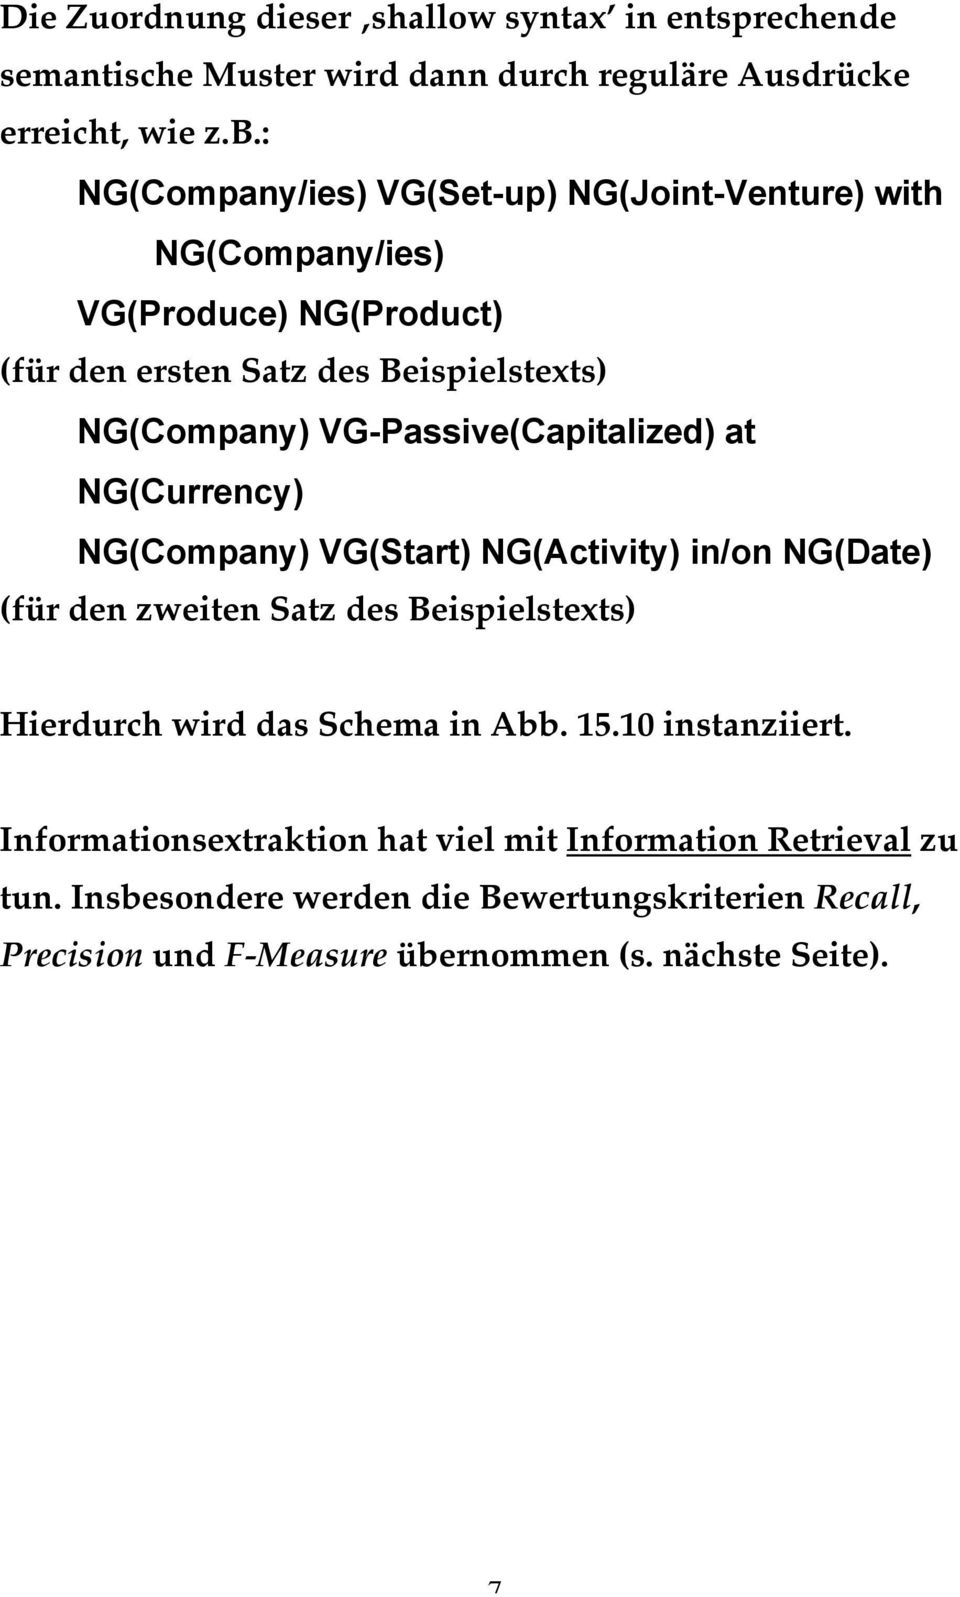 VG-Passive(Capitalized) at NG(Currency) NG(Company) VG(Start) NG(Activity) in/on NG(Date) (für den zweiten Satz des Beispielstexts) Hierdurch wird das Schema